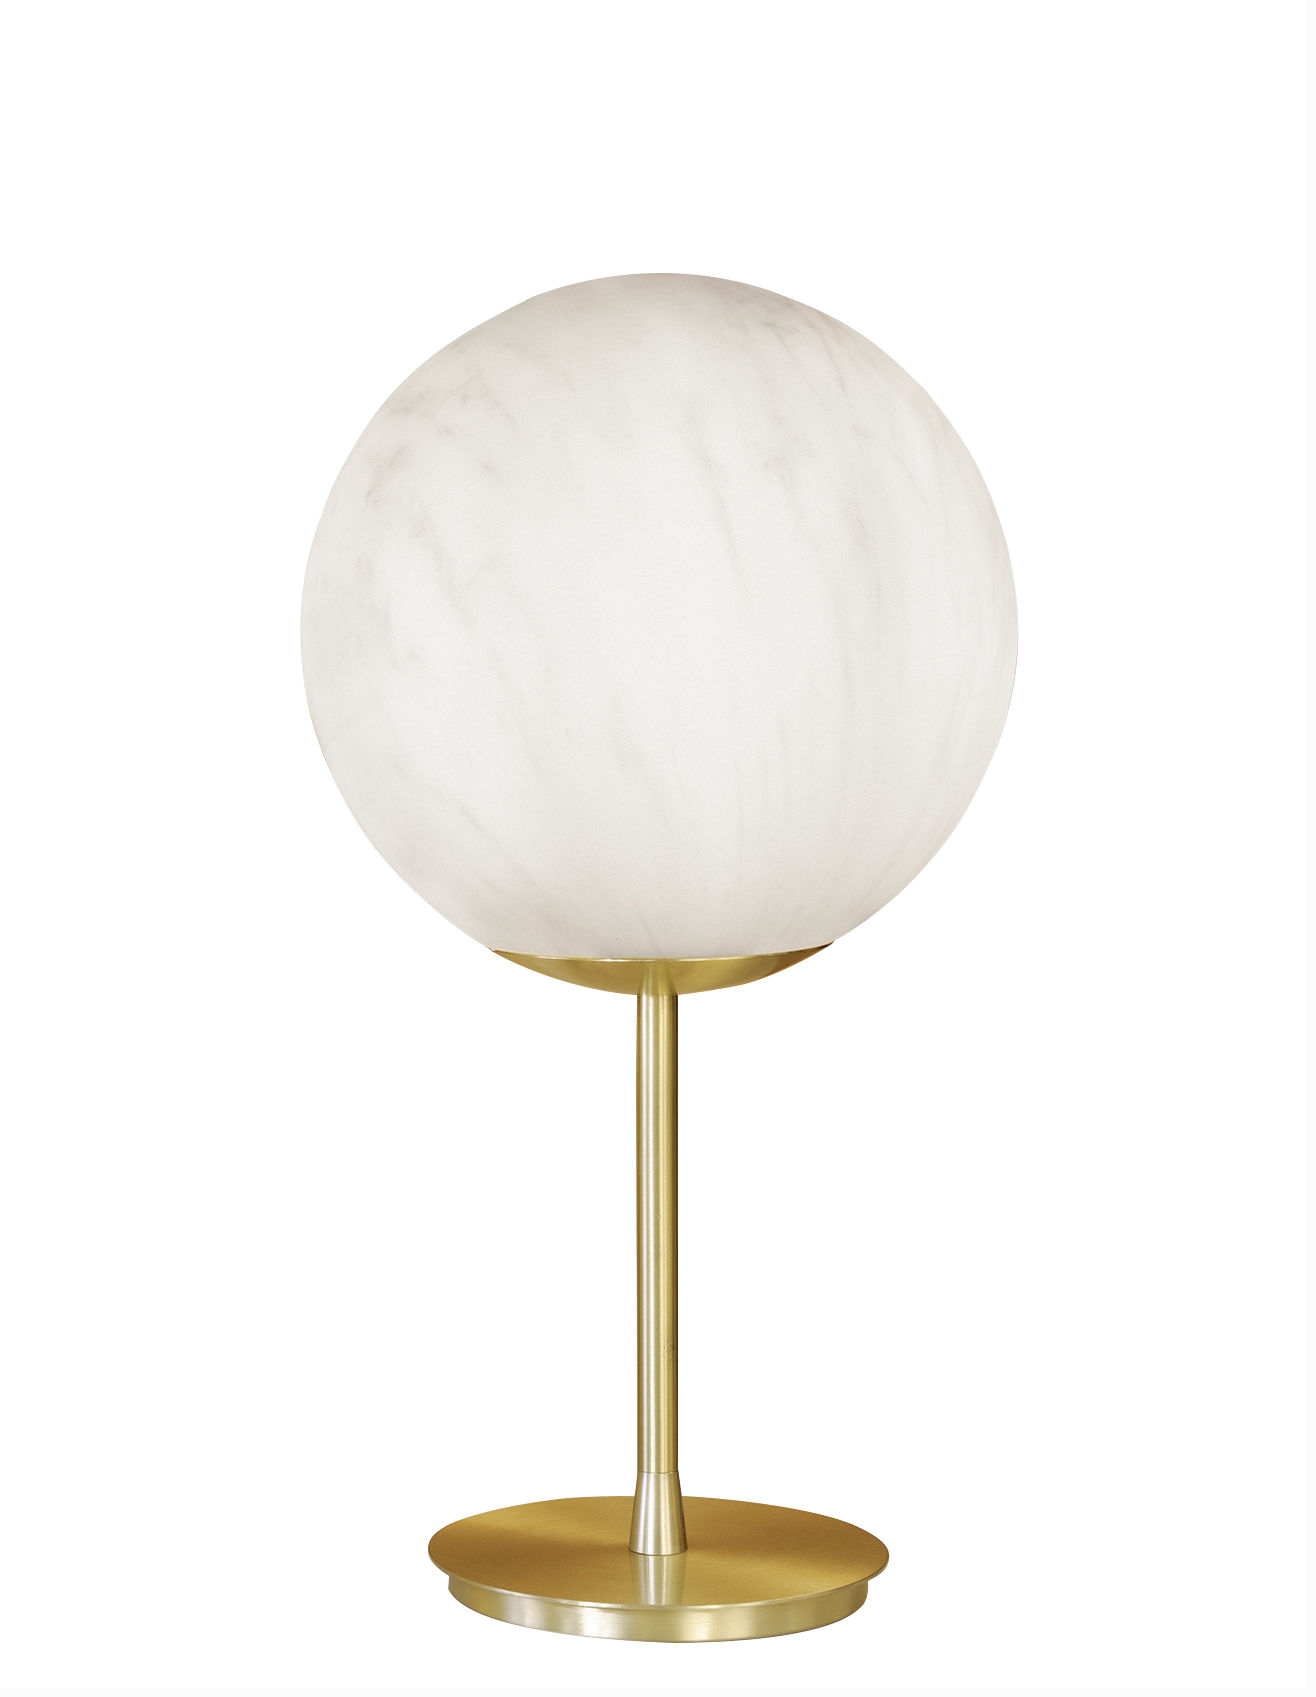 Lighting - Table Lamps - Mineral Lamp - / Marble-effect plastic - Ø 40 x H 75 cm by Slide - Grey / Brass - Brass, Recyclable polyethylene